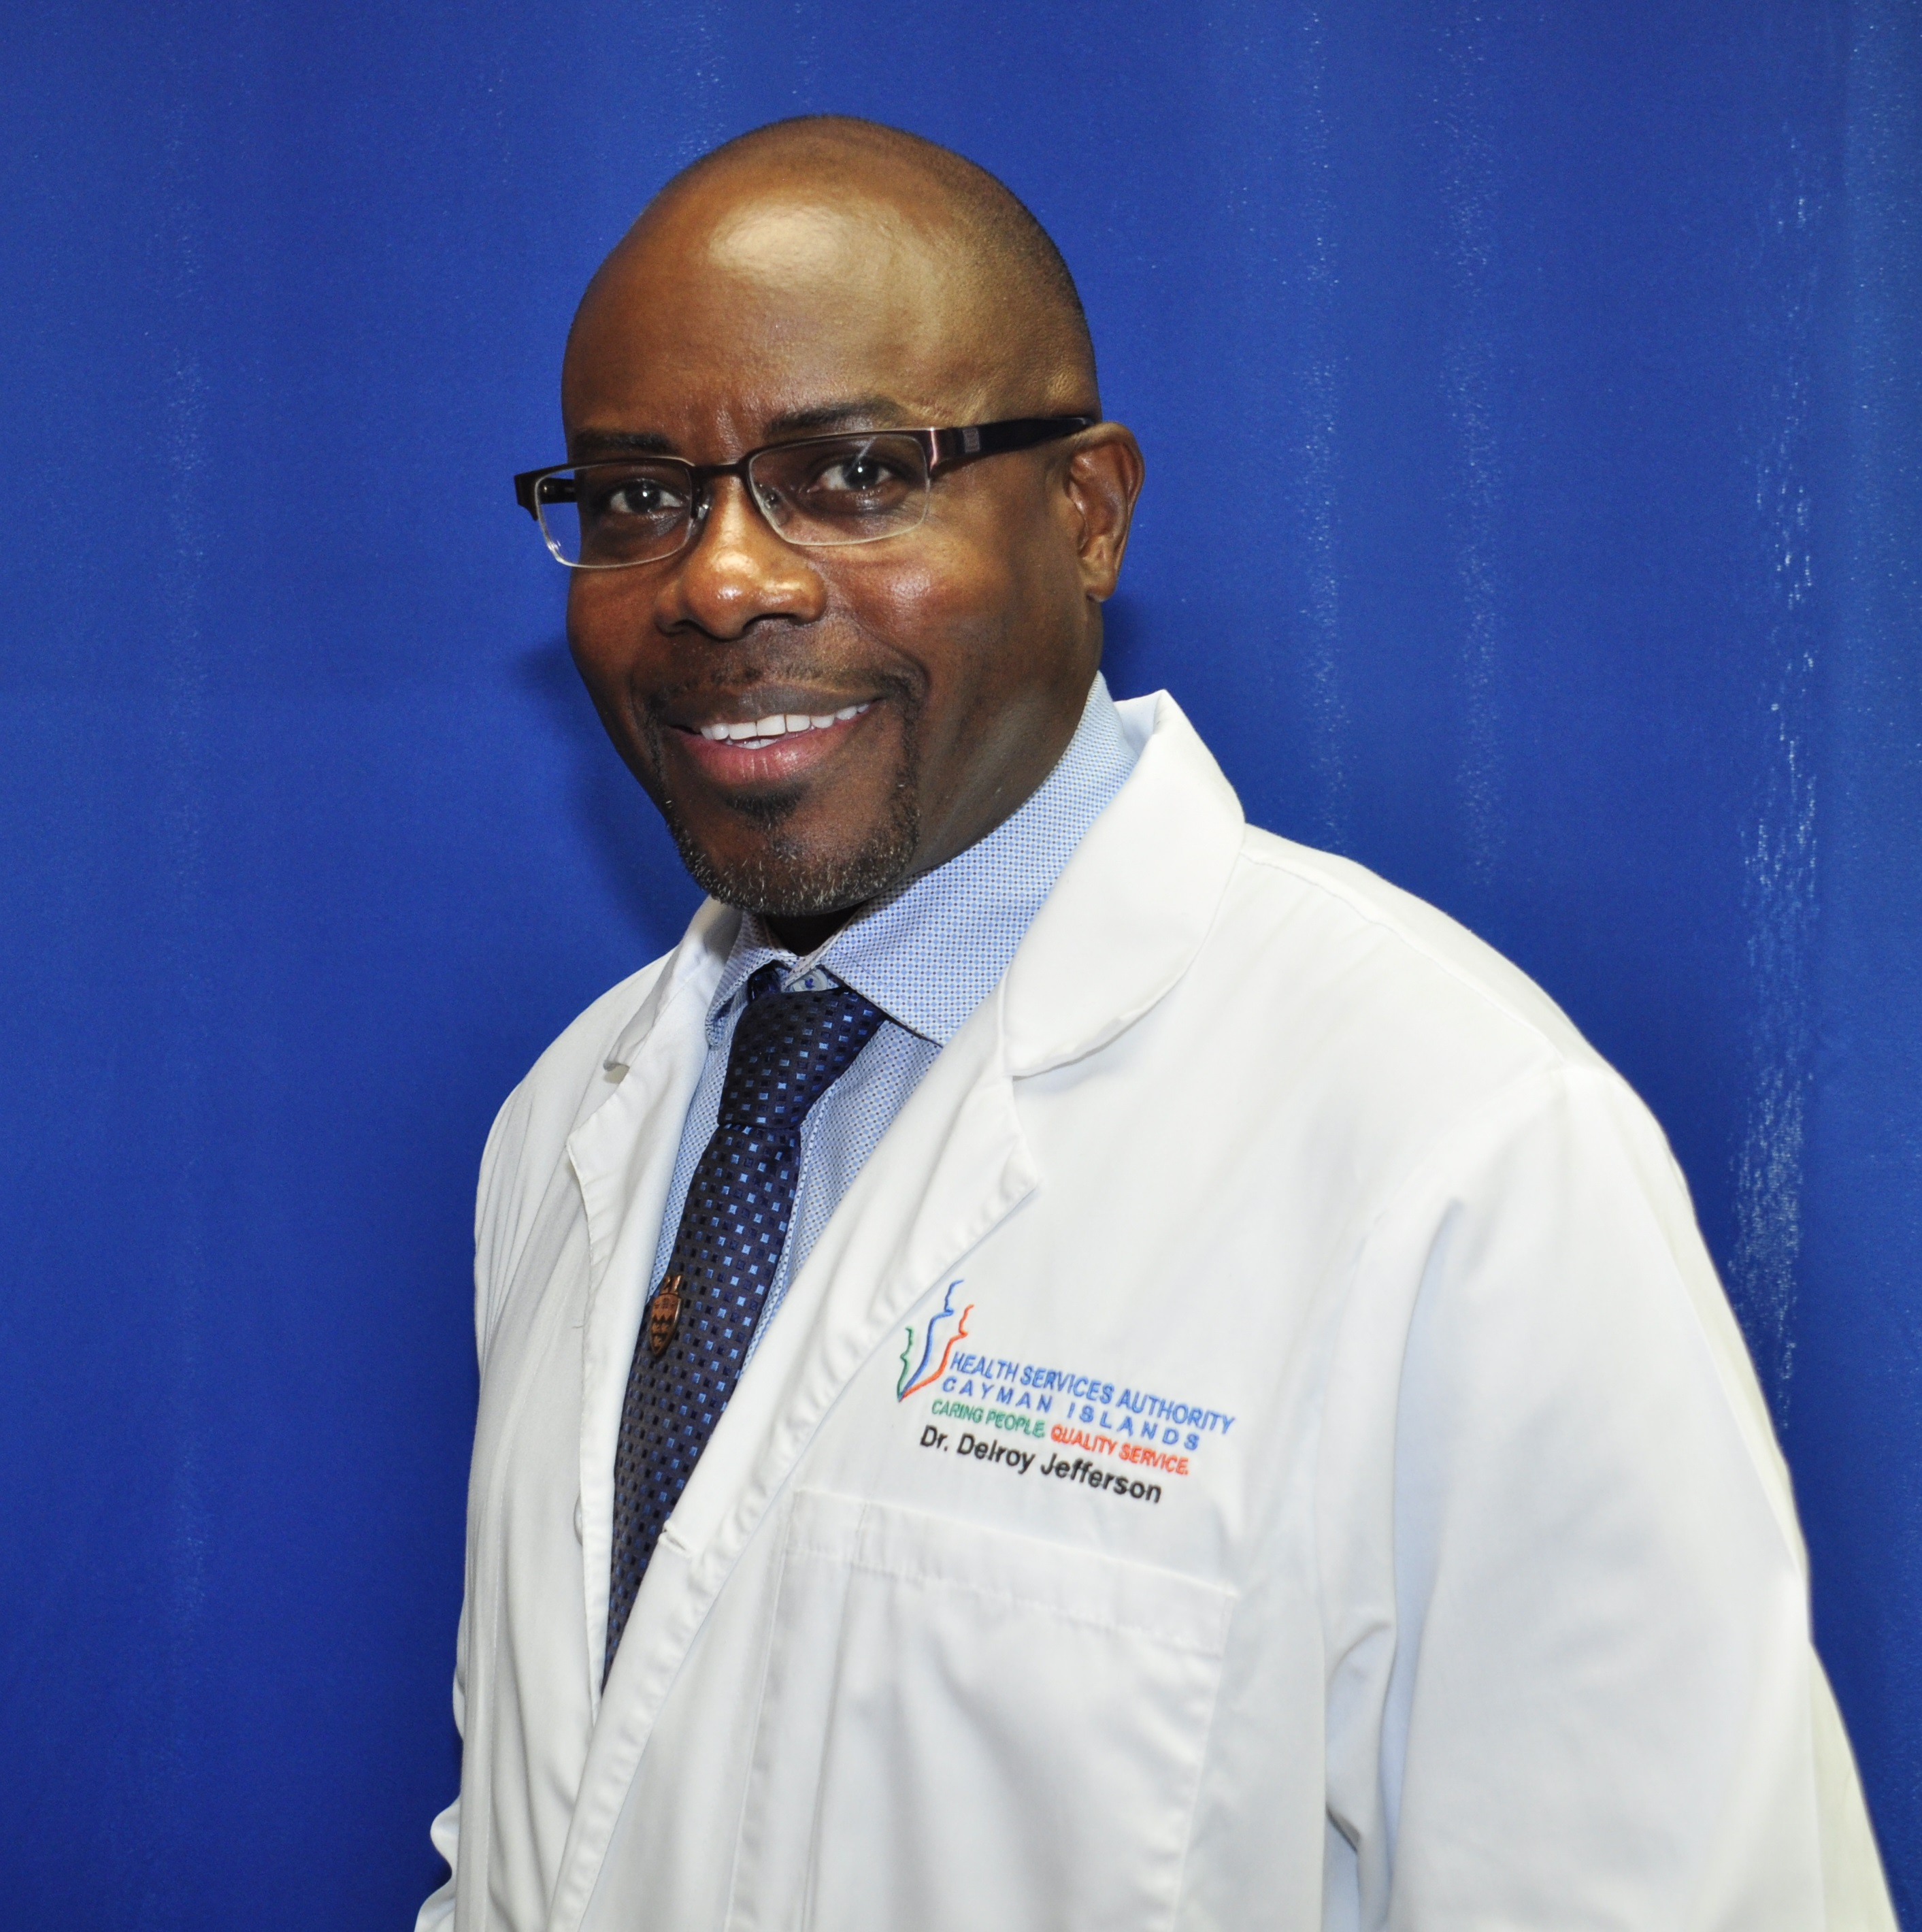 Dr Delroy Jefferson, Medical Director, Health Services Authority